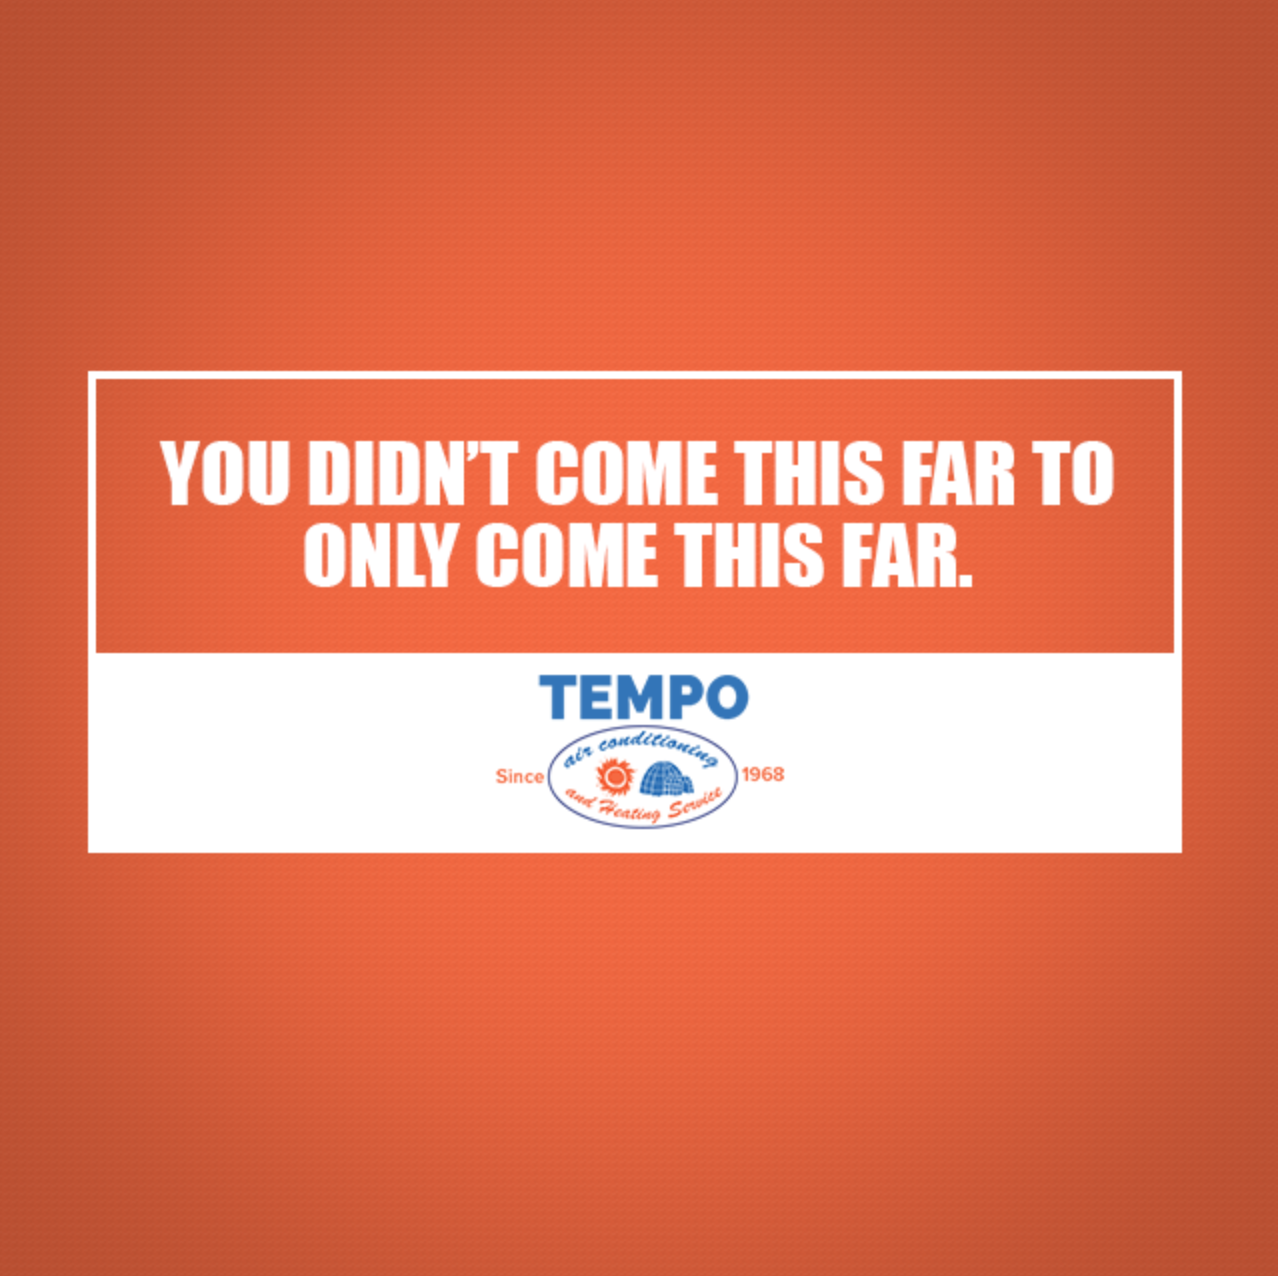 Tempo Air Conditioning image 0